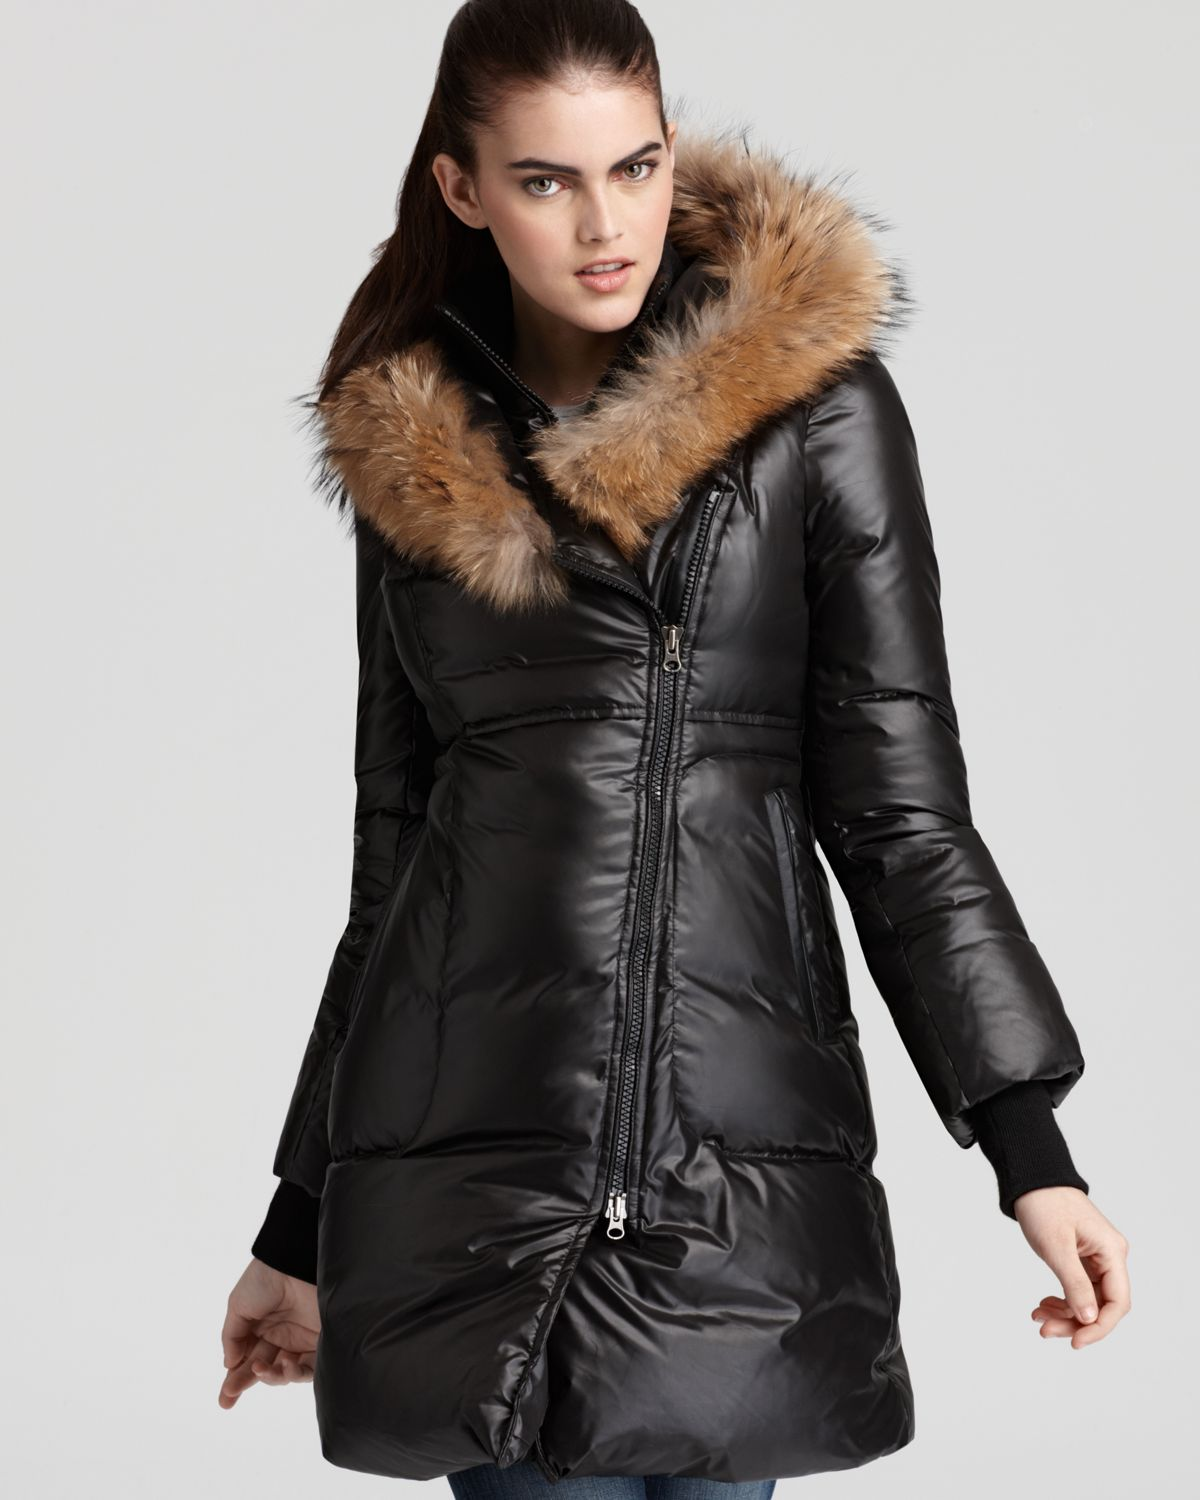 Spyder Women's DULCE Silver Fox Fur-Trimmed Down SKI Jacket/Coat, Size 6US/8EU MSRP $ The DULCE well insulated jacket with quality Power Down Filled will keep you warm and is great for Winter, Travel, Work, School, or Casual.